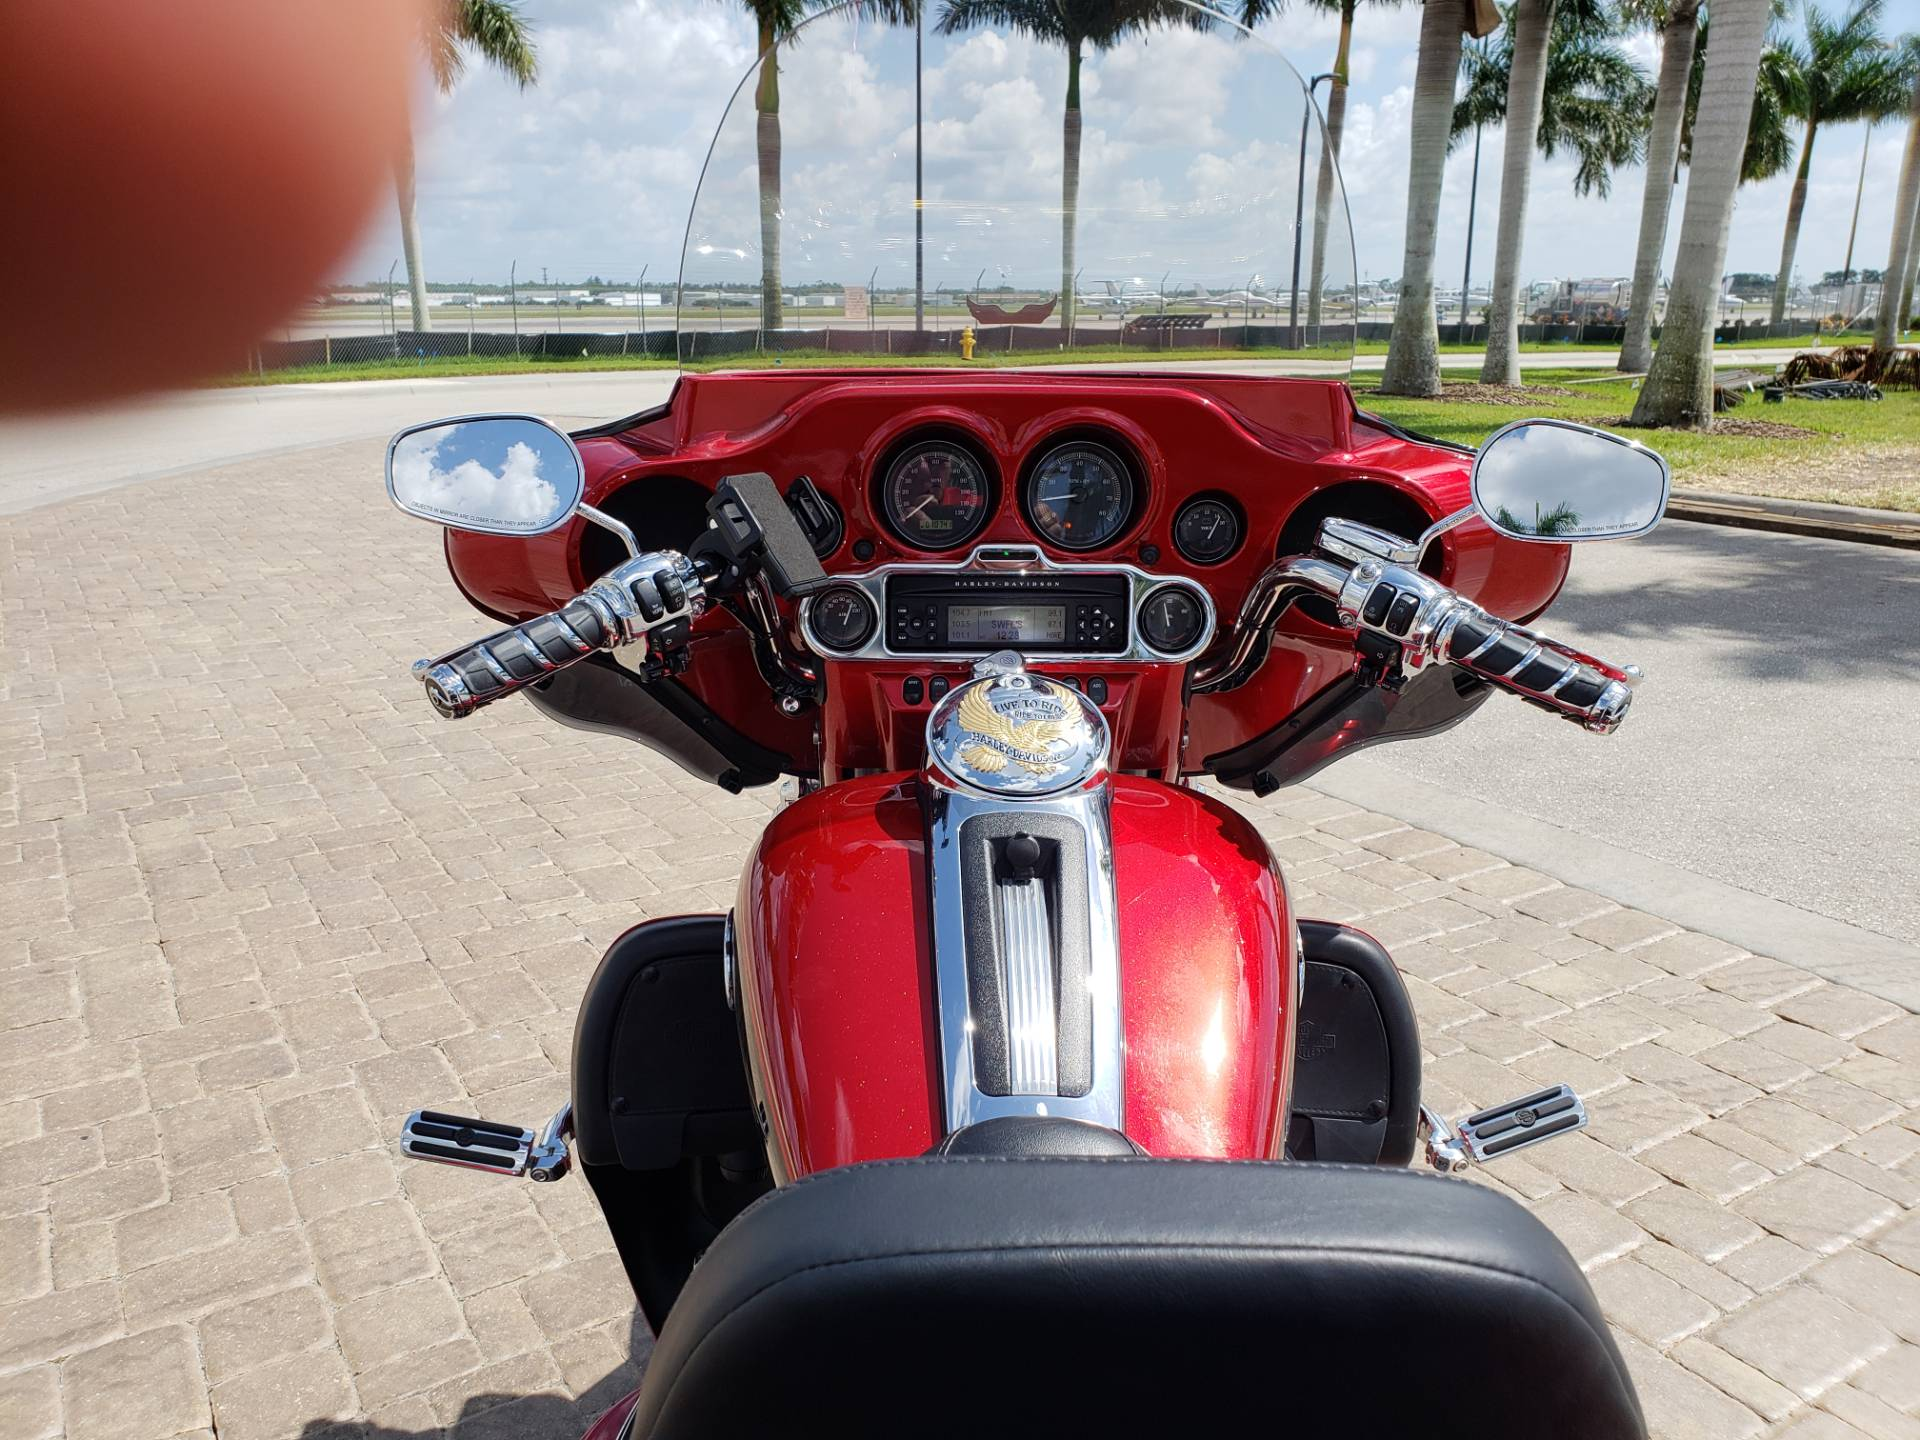 Used 2012 Harley Davidson Ultra Classic Trikes In Fort Myers Fl Red Florida